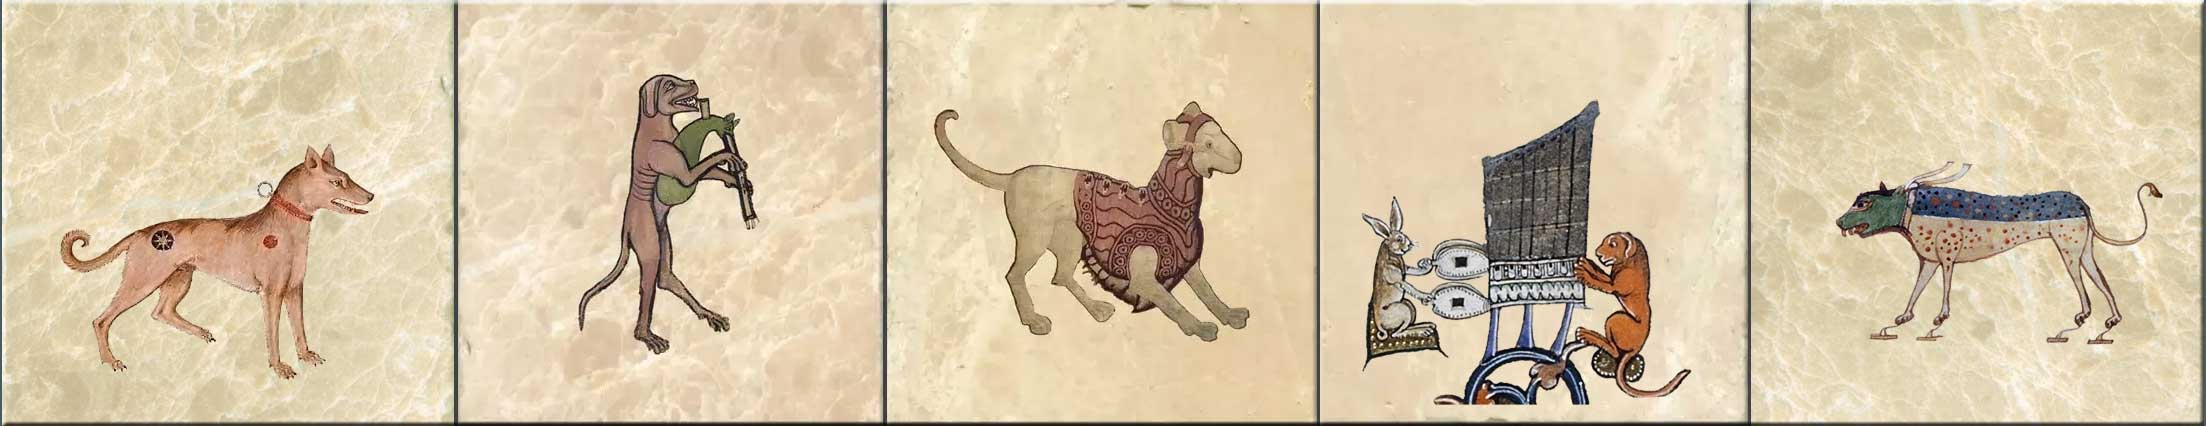 Medieval Dogs, dog tiles. WilliamMorrisTile.com